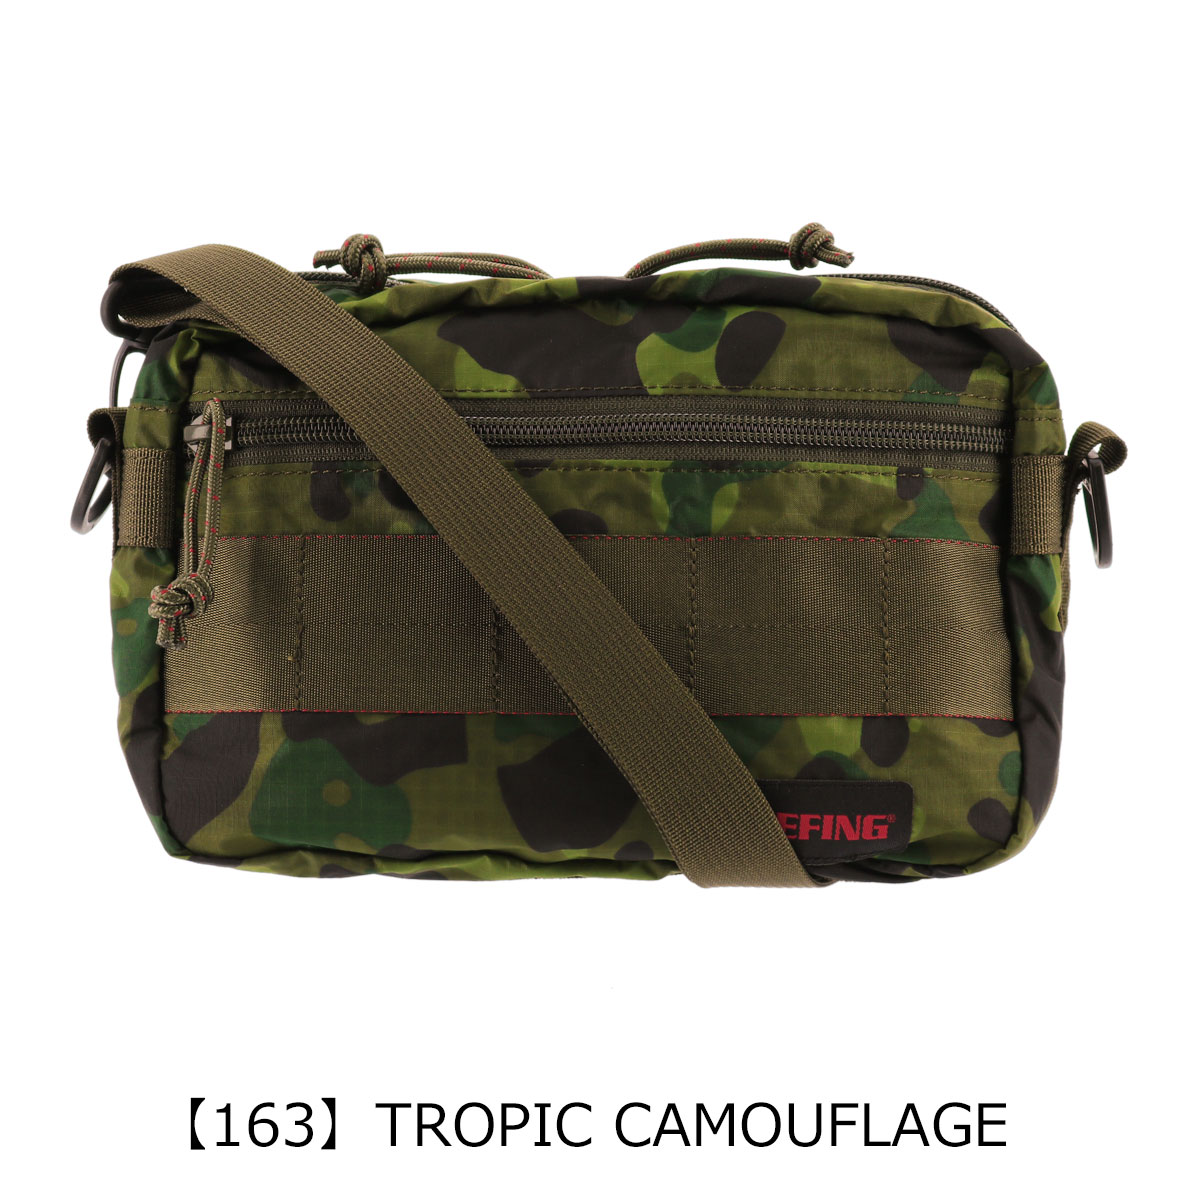 【163】TROPIC CAMOUFLAGE